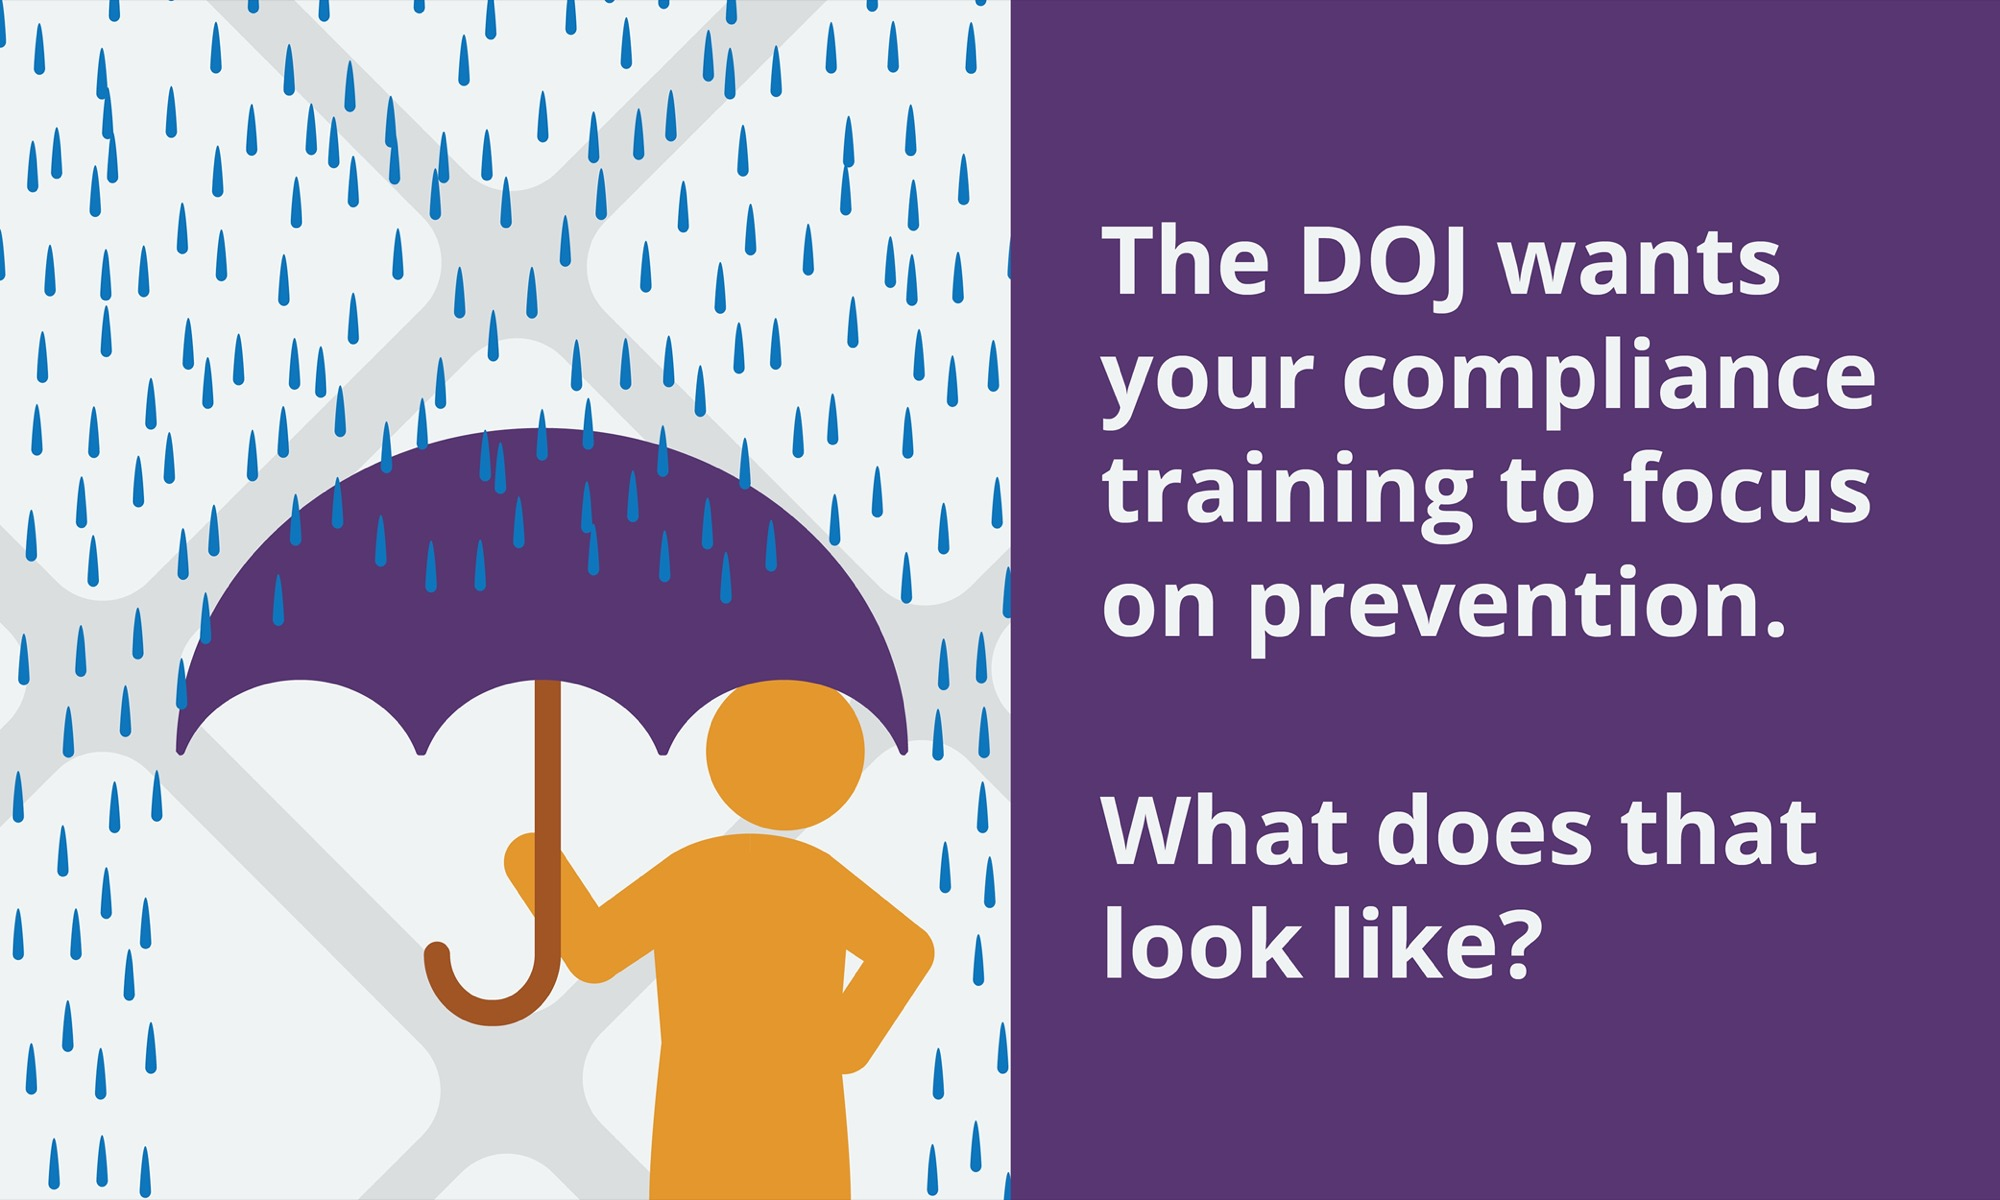 The DOJ wants your compliance training to focus on prevention. What does that look like?